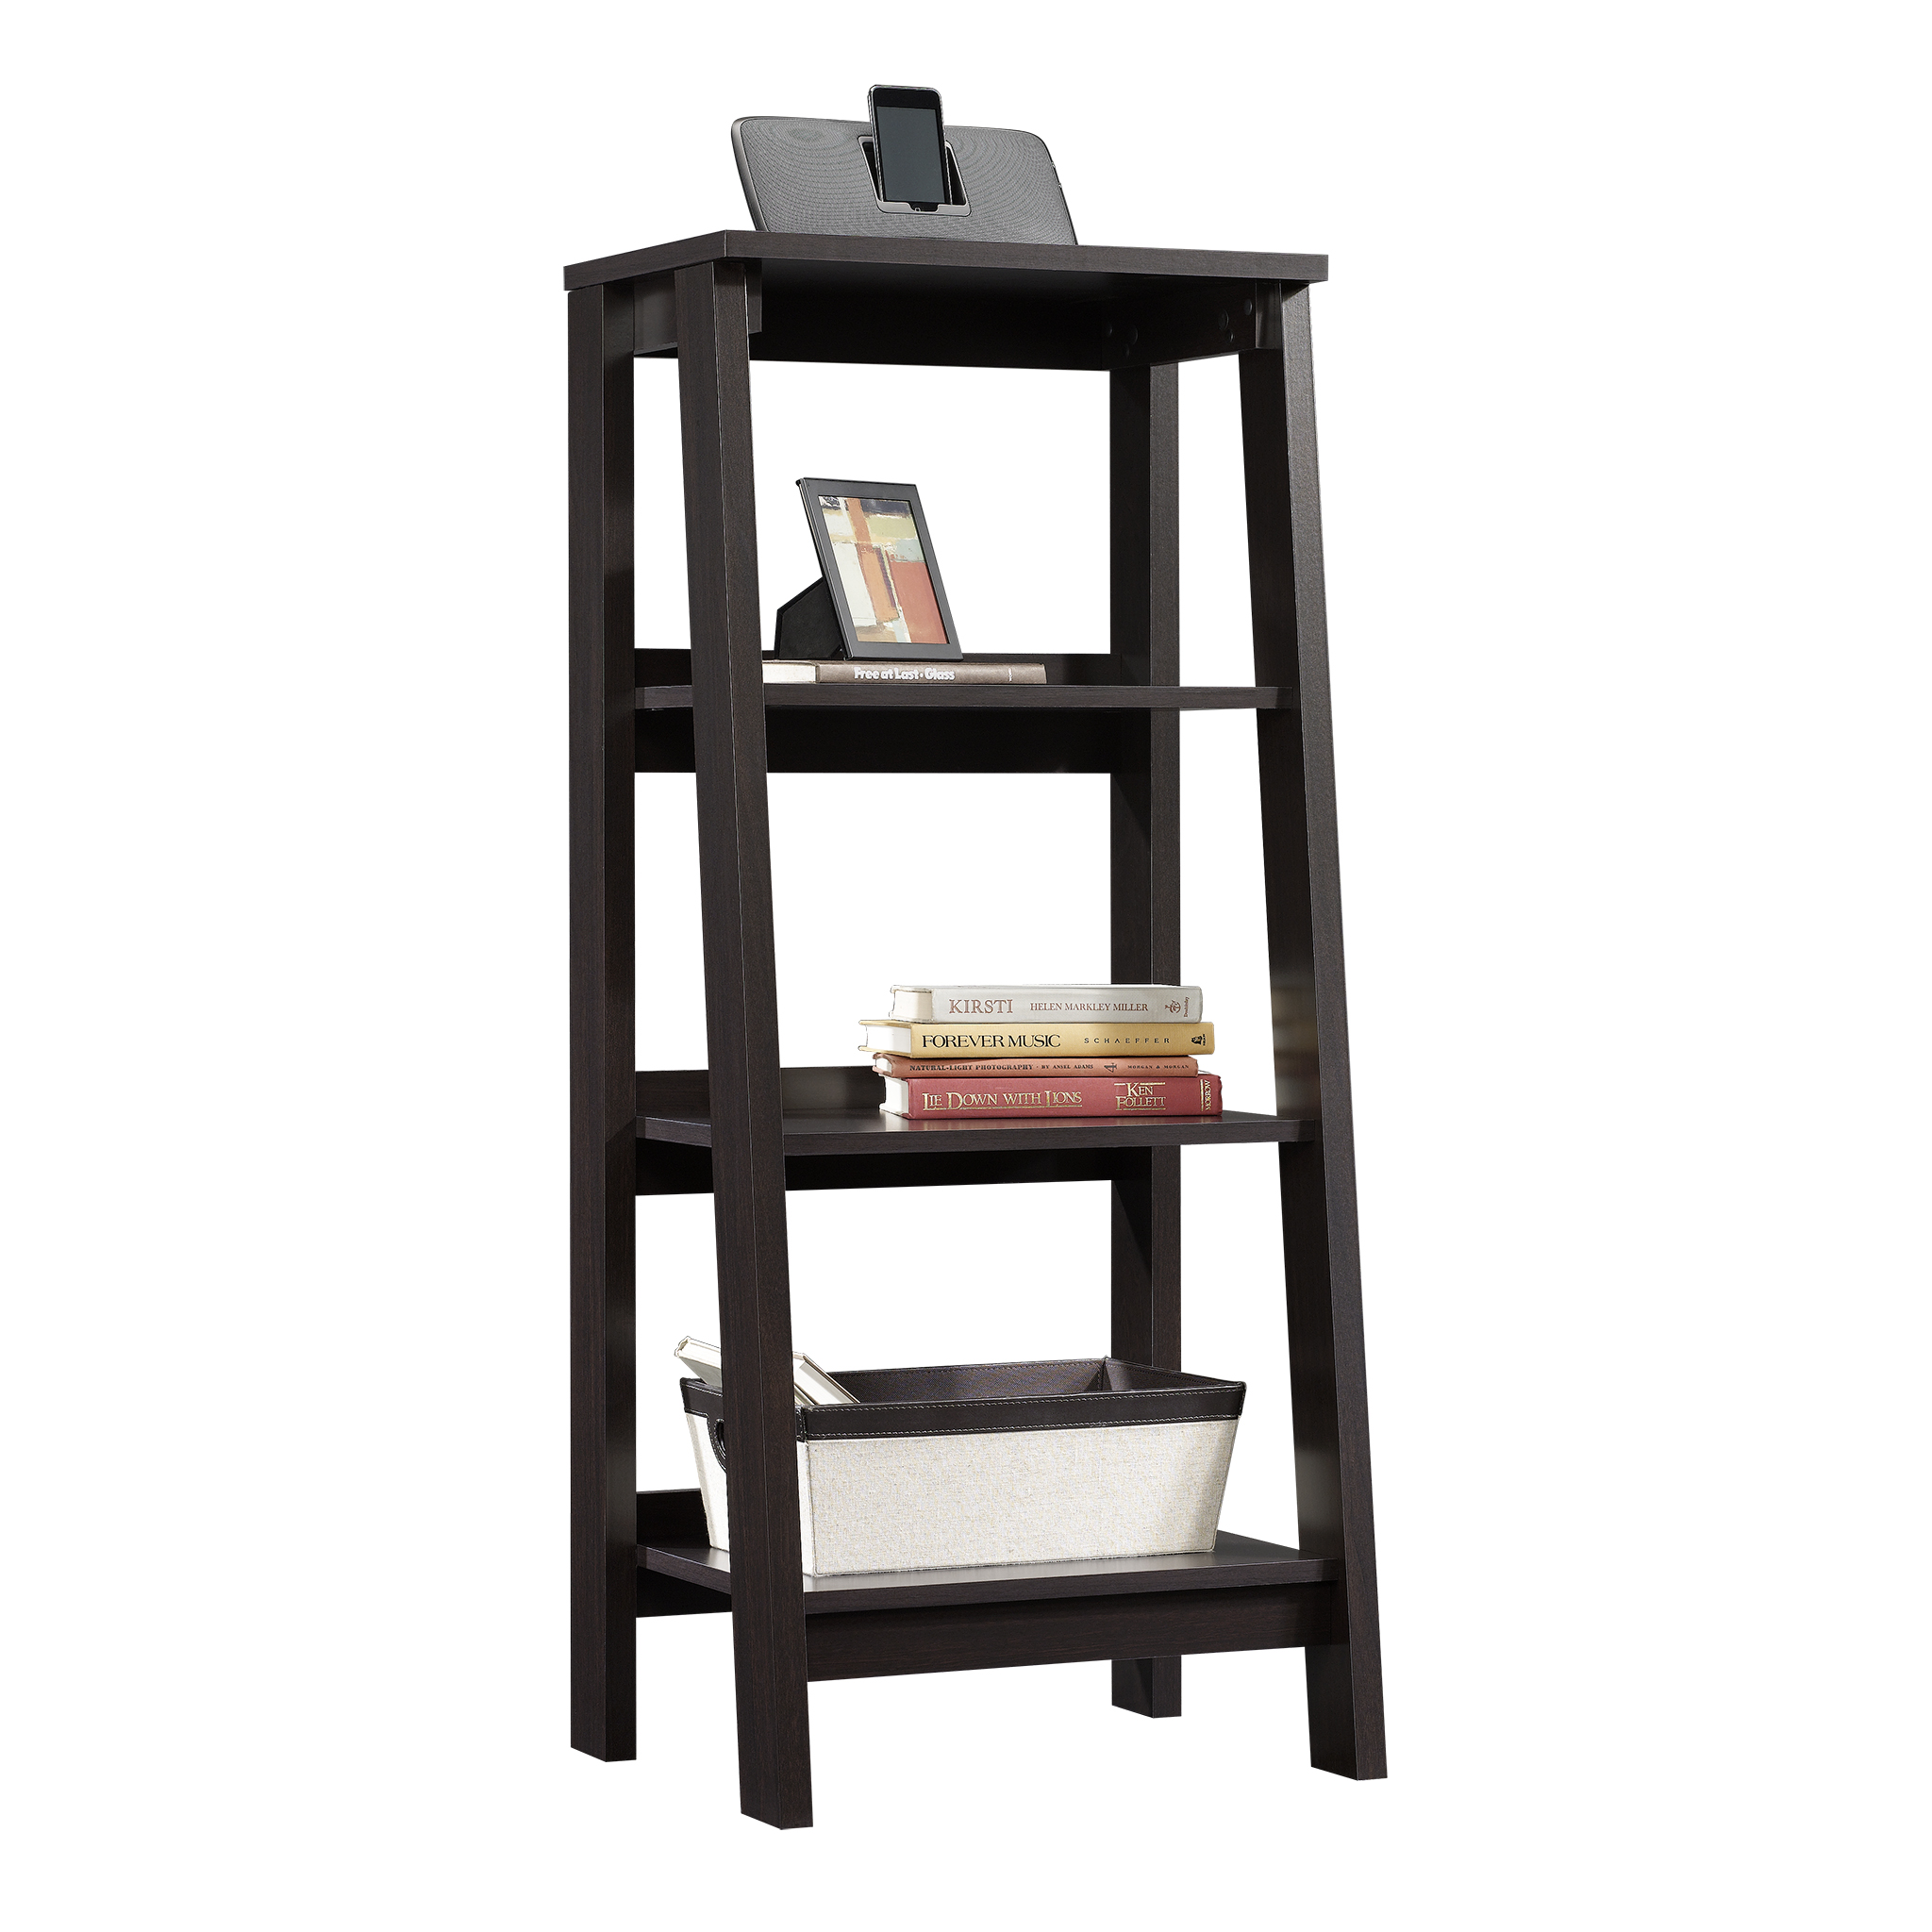 Sauder Trestle 3-Shelf Bookcase, Jamocha Wood Finish